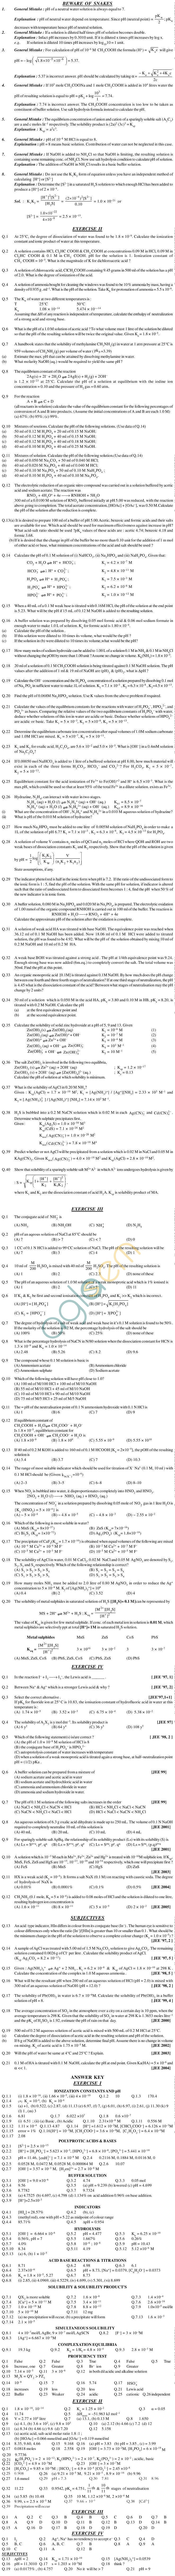 Chemistry Study Material - Chapter 7